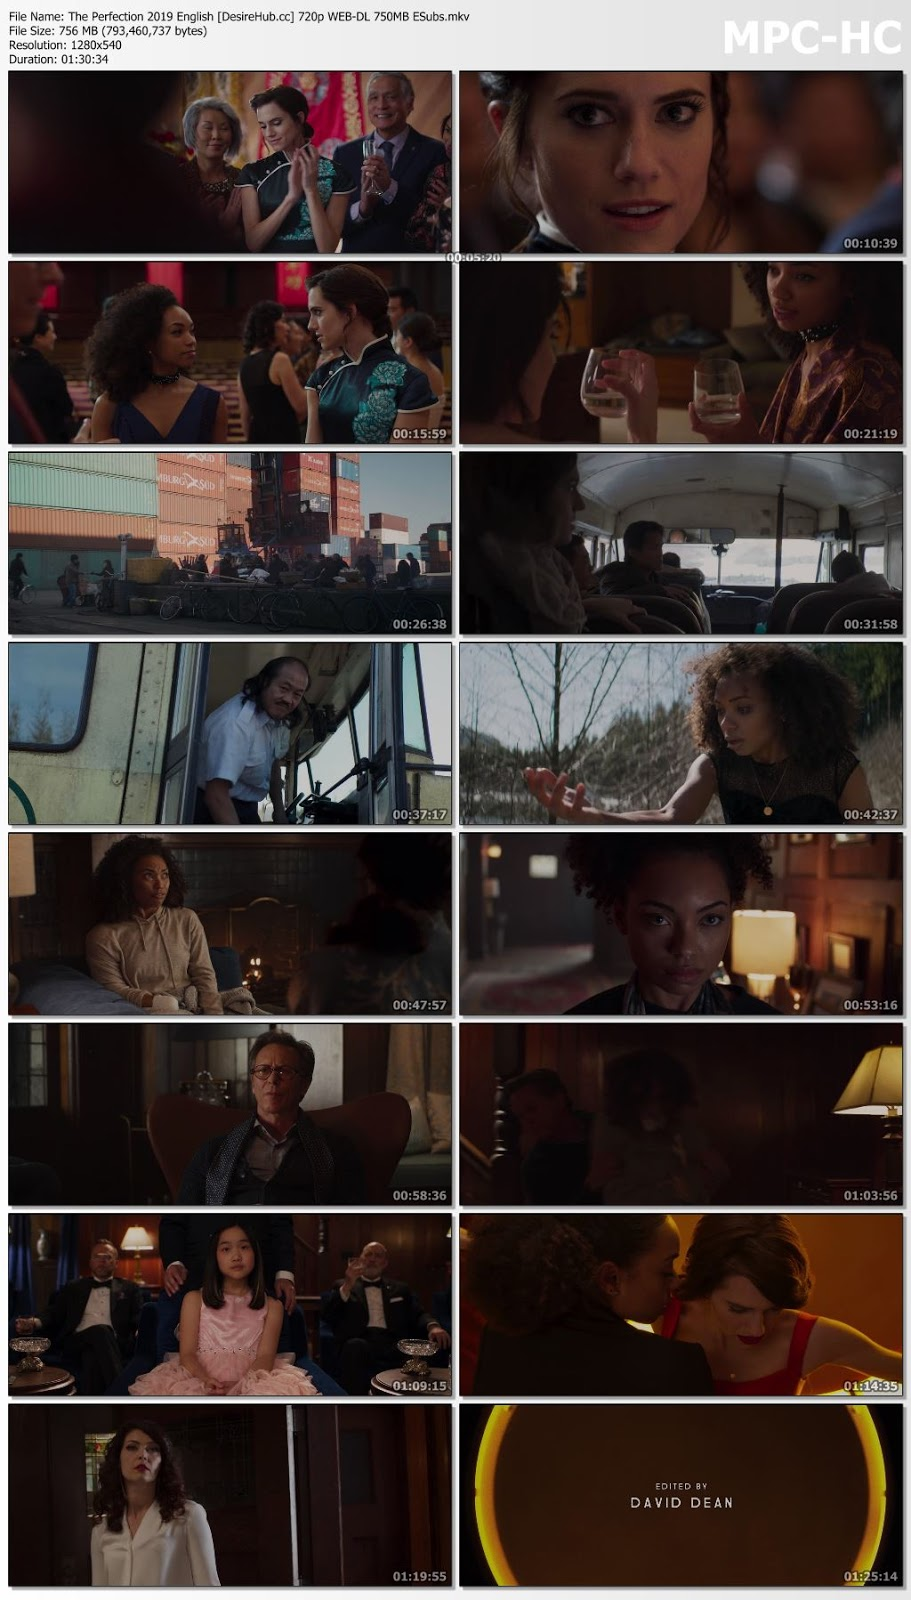 The Perfection 2019 English 720p WEB-DL ESubs 750MB Desirehub